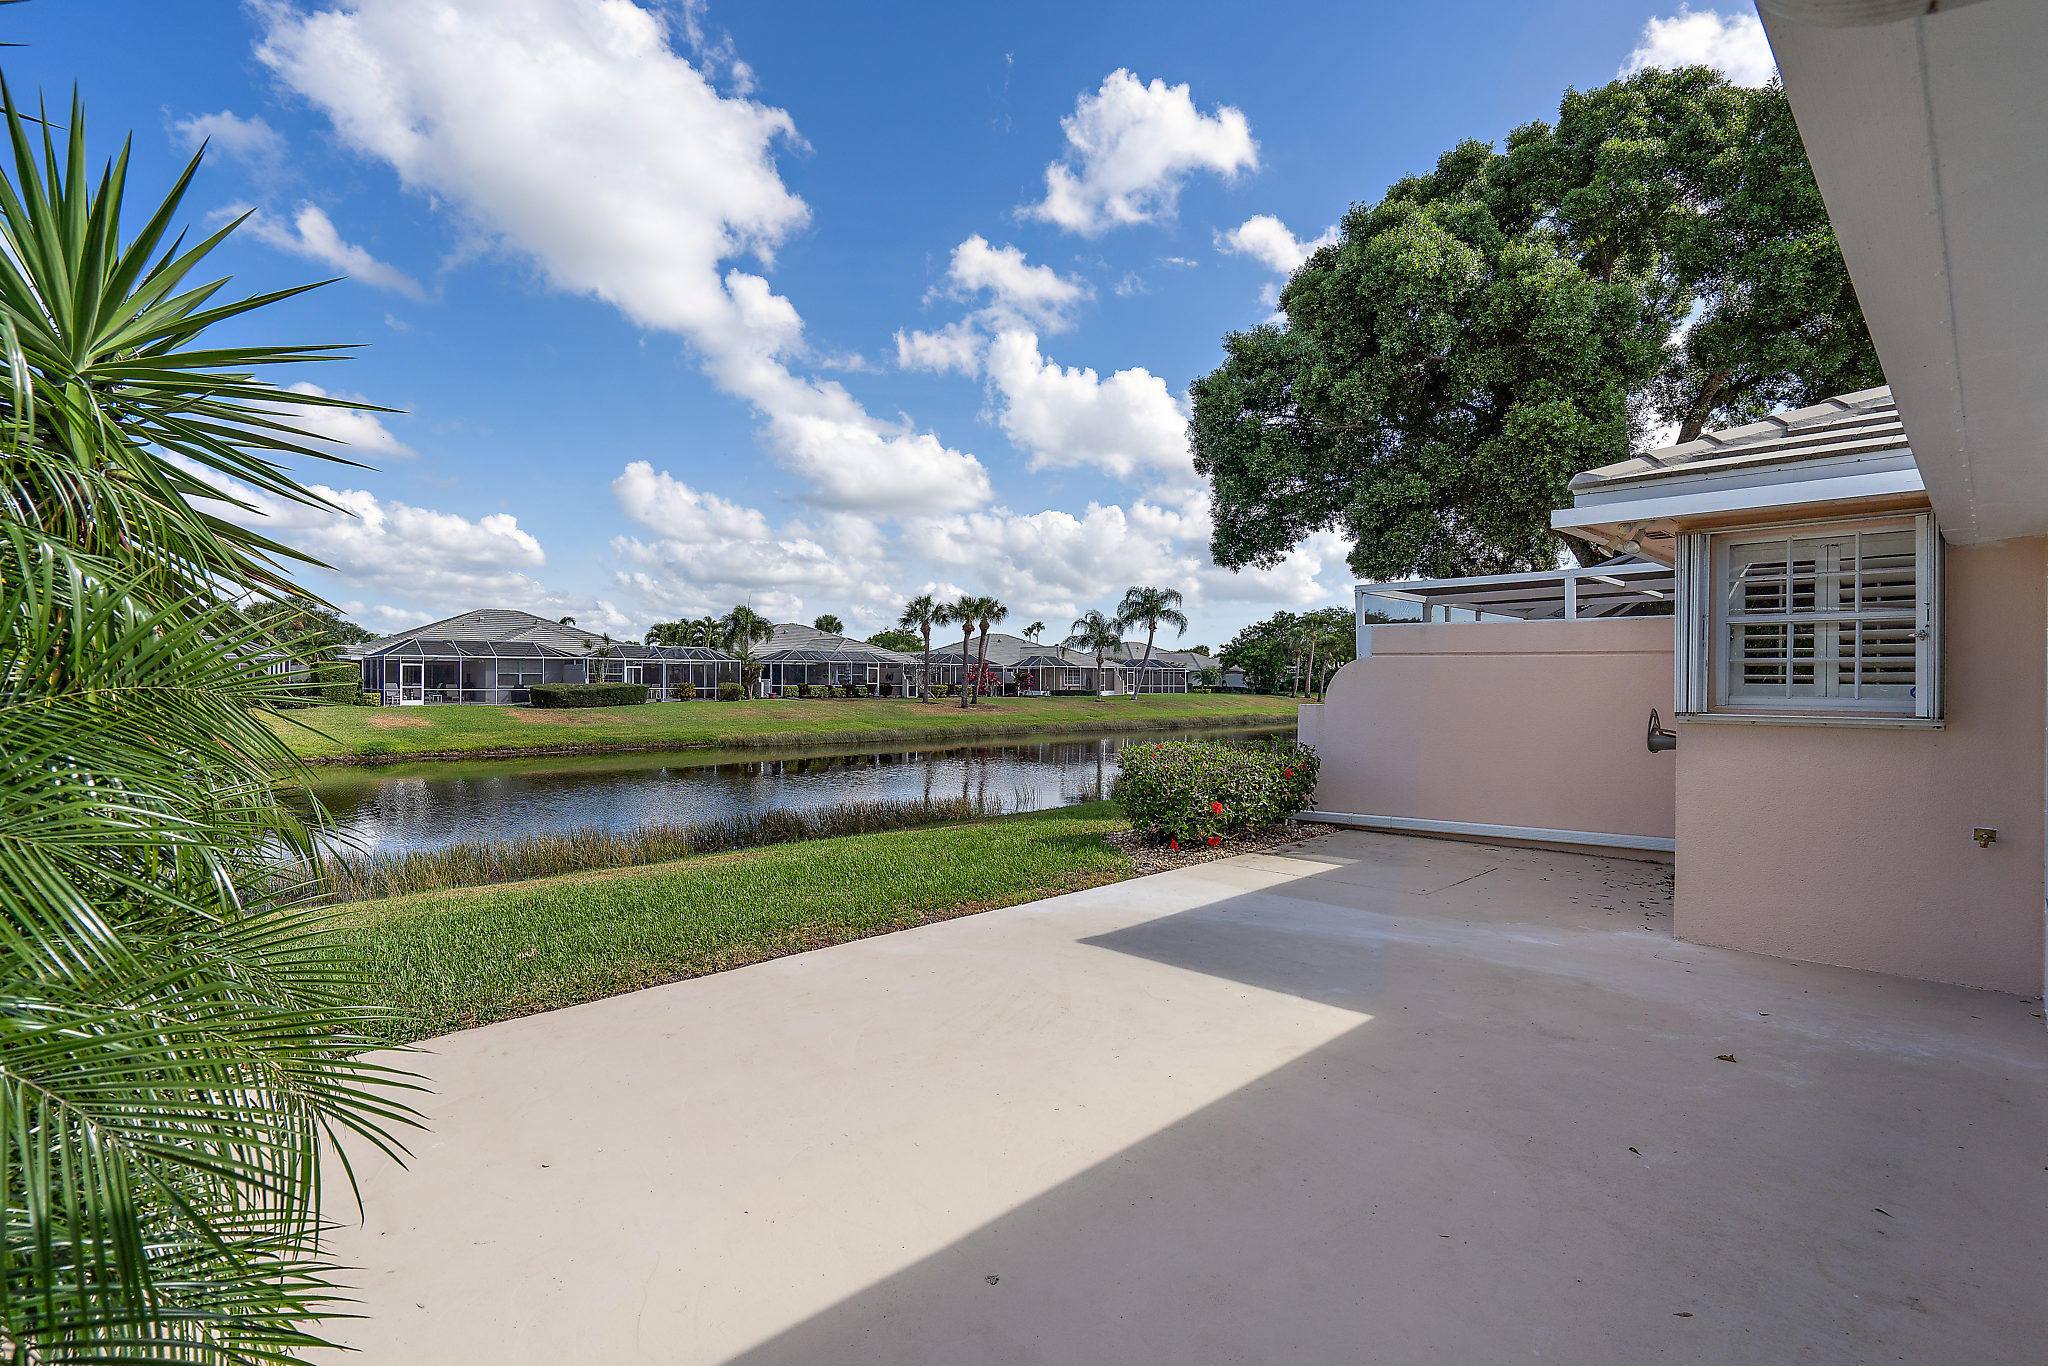 Lakefront Move-In Beauty in a quiet, private community just off St Lucie West Bv & near stadium, shopping & dining! Already passed inspections & ready to go! This DiVosta Extended Capri home is so meticulously maintained it barely looks lived in! In additional, the patio was expanded by previous owners, into a Florida Room which gives this home an extra 200 +/- extra square footage of living space! Two Spacious Master bedrooms w/ custom closet organizers, plantation shutters, granite counters thru-out, entertainment center built in, tons of storage space, indoor laundry room w/ washer, dryer & built-ins & sink, ALL appliances are in perfect condition & included,  Roof maintained by HOA, accordion hurricane shutters & more! PLUS* Pool, tennis and clubhouse a few steps away from this home!